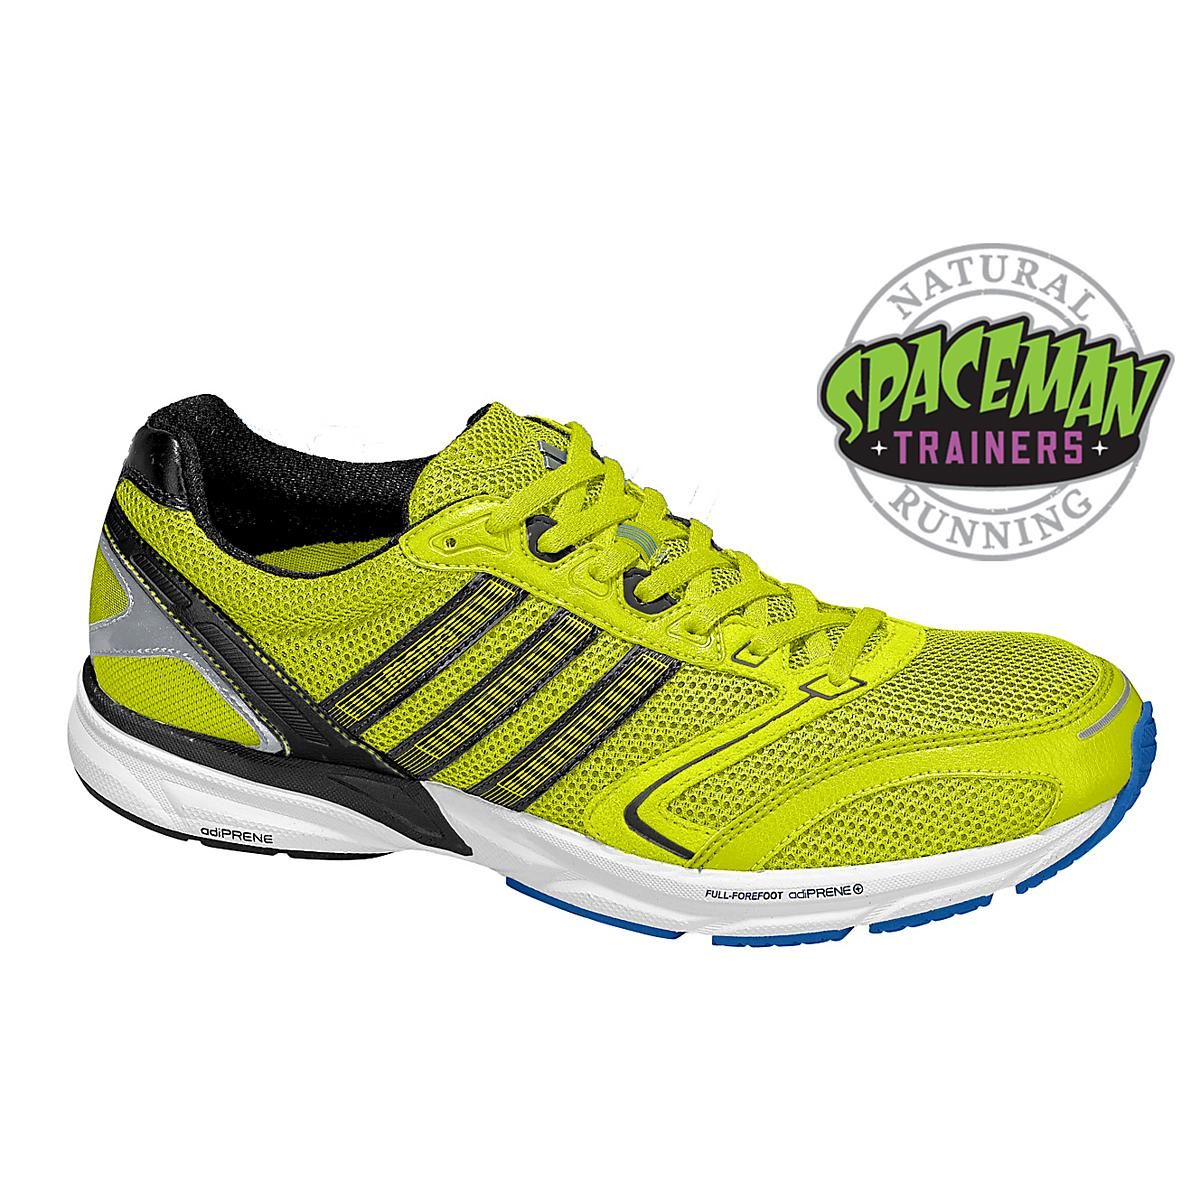 2b9bc7e635d Mens adidas adiZero Mana Racing Shoe at Road Runner Sports